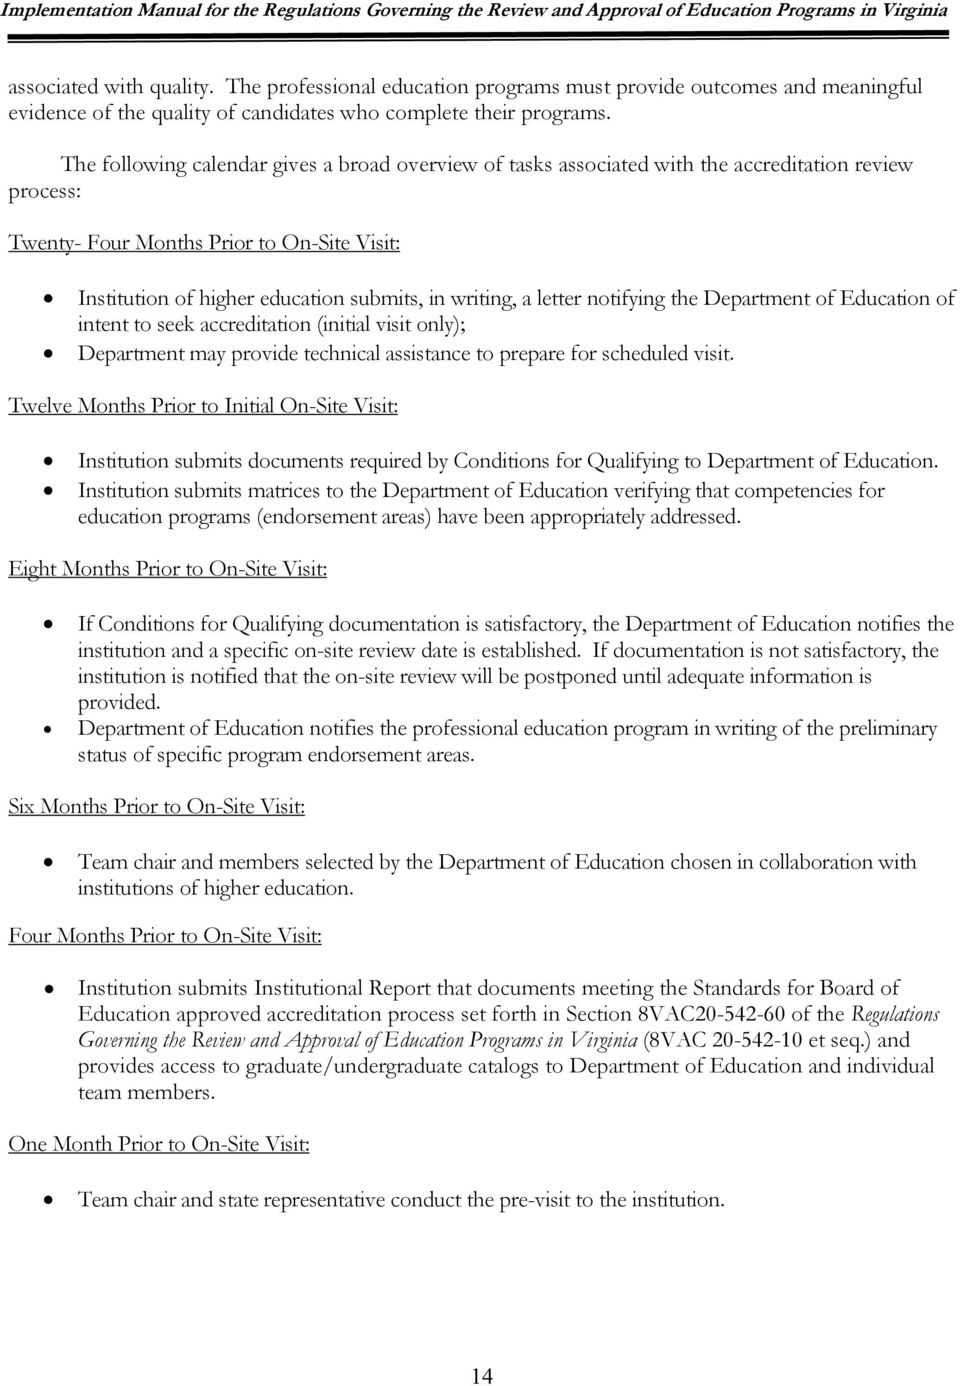 writing, a letter notifying the Department of Education of intent to seek accreditation (initial visit only); Department may provide technical assistance to prepare for scheduled visit.